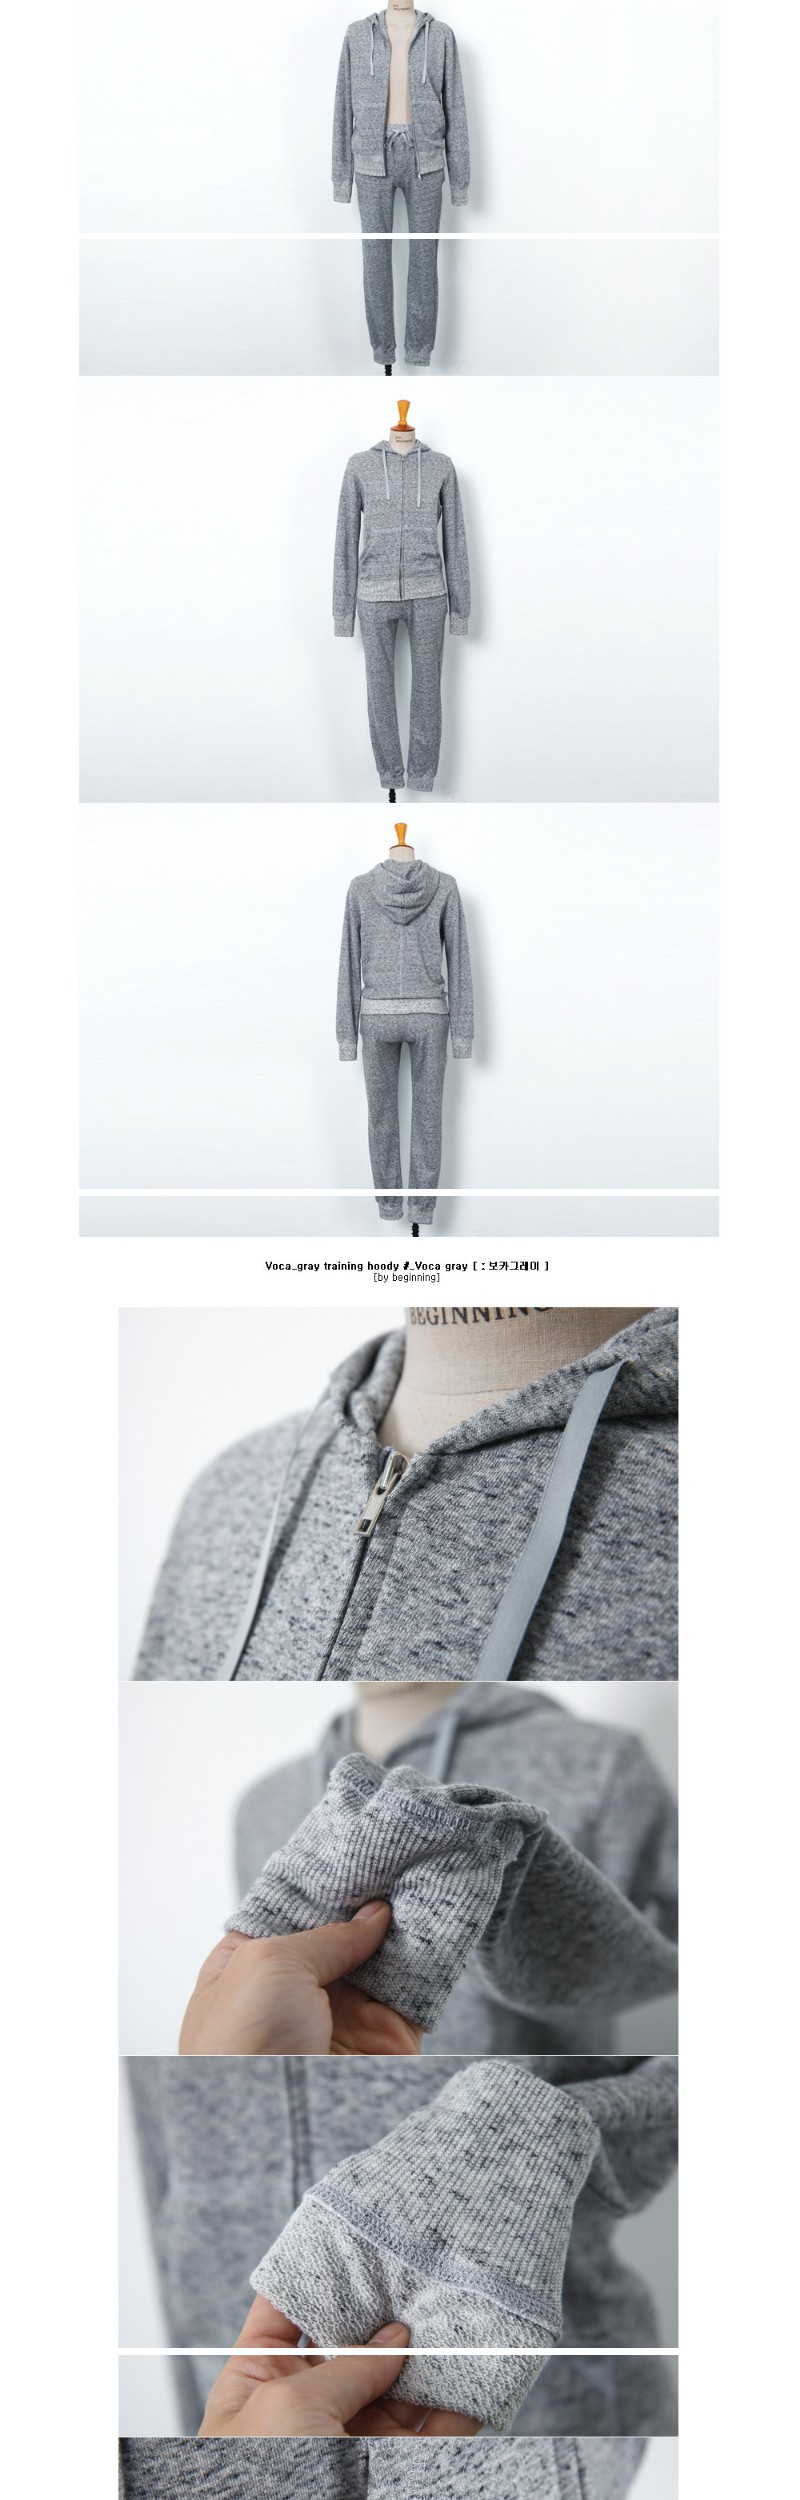 Made_outer-005